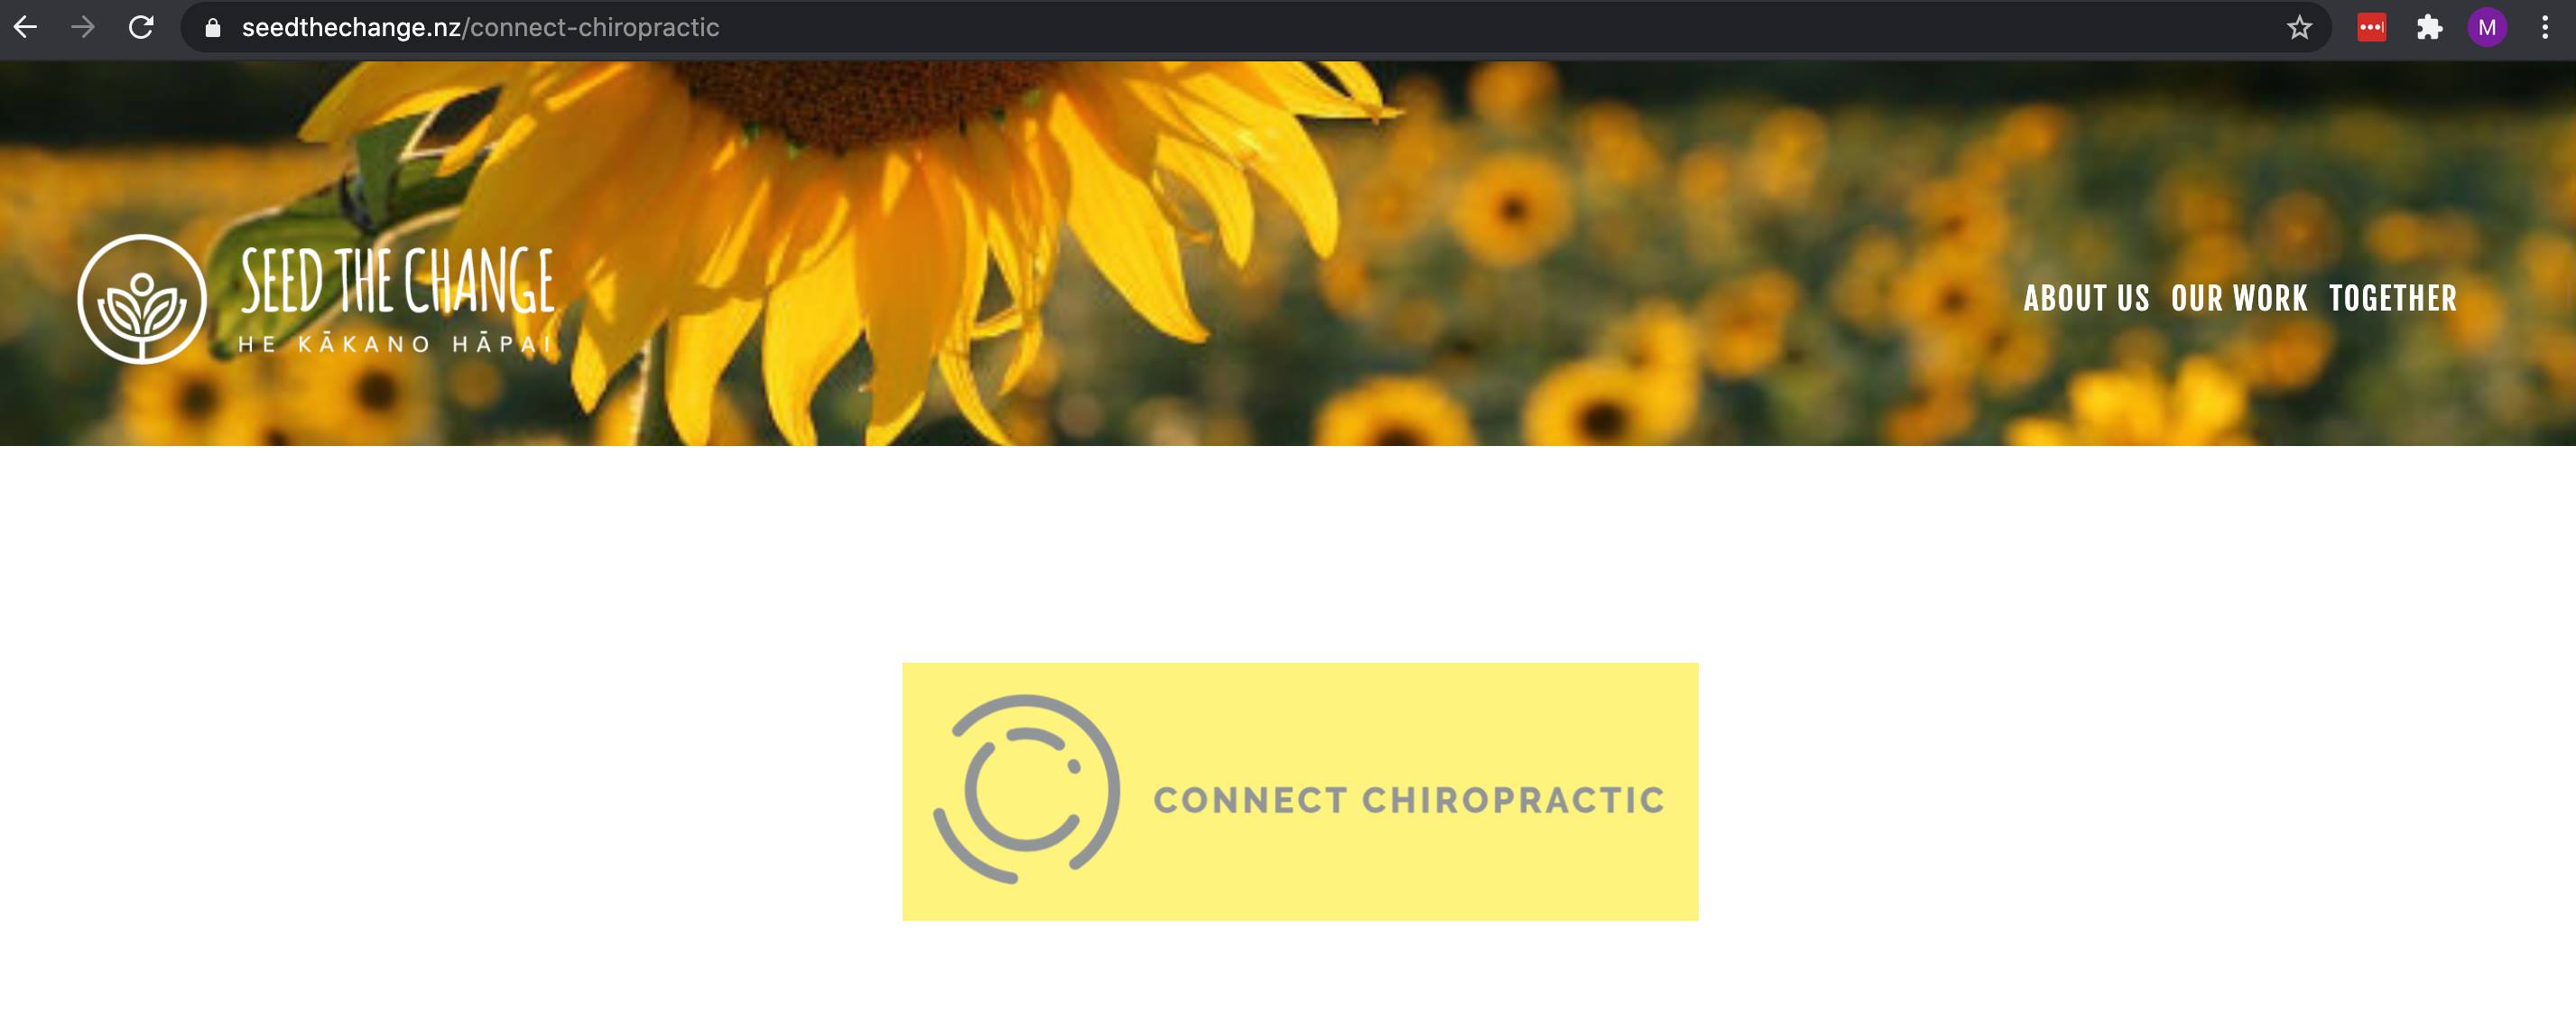 Christchurch Chiropractor relationship with Seed the Change